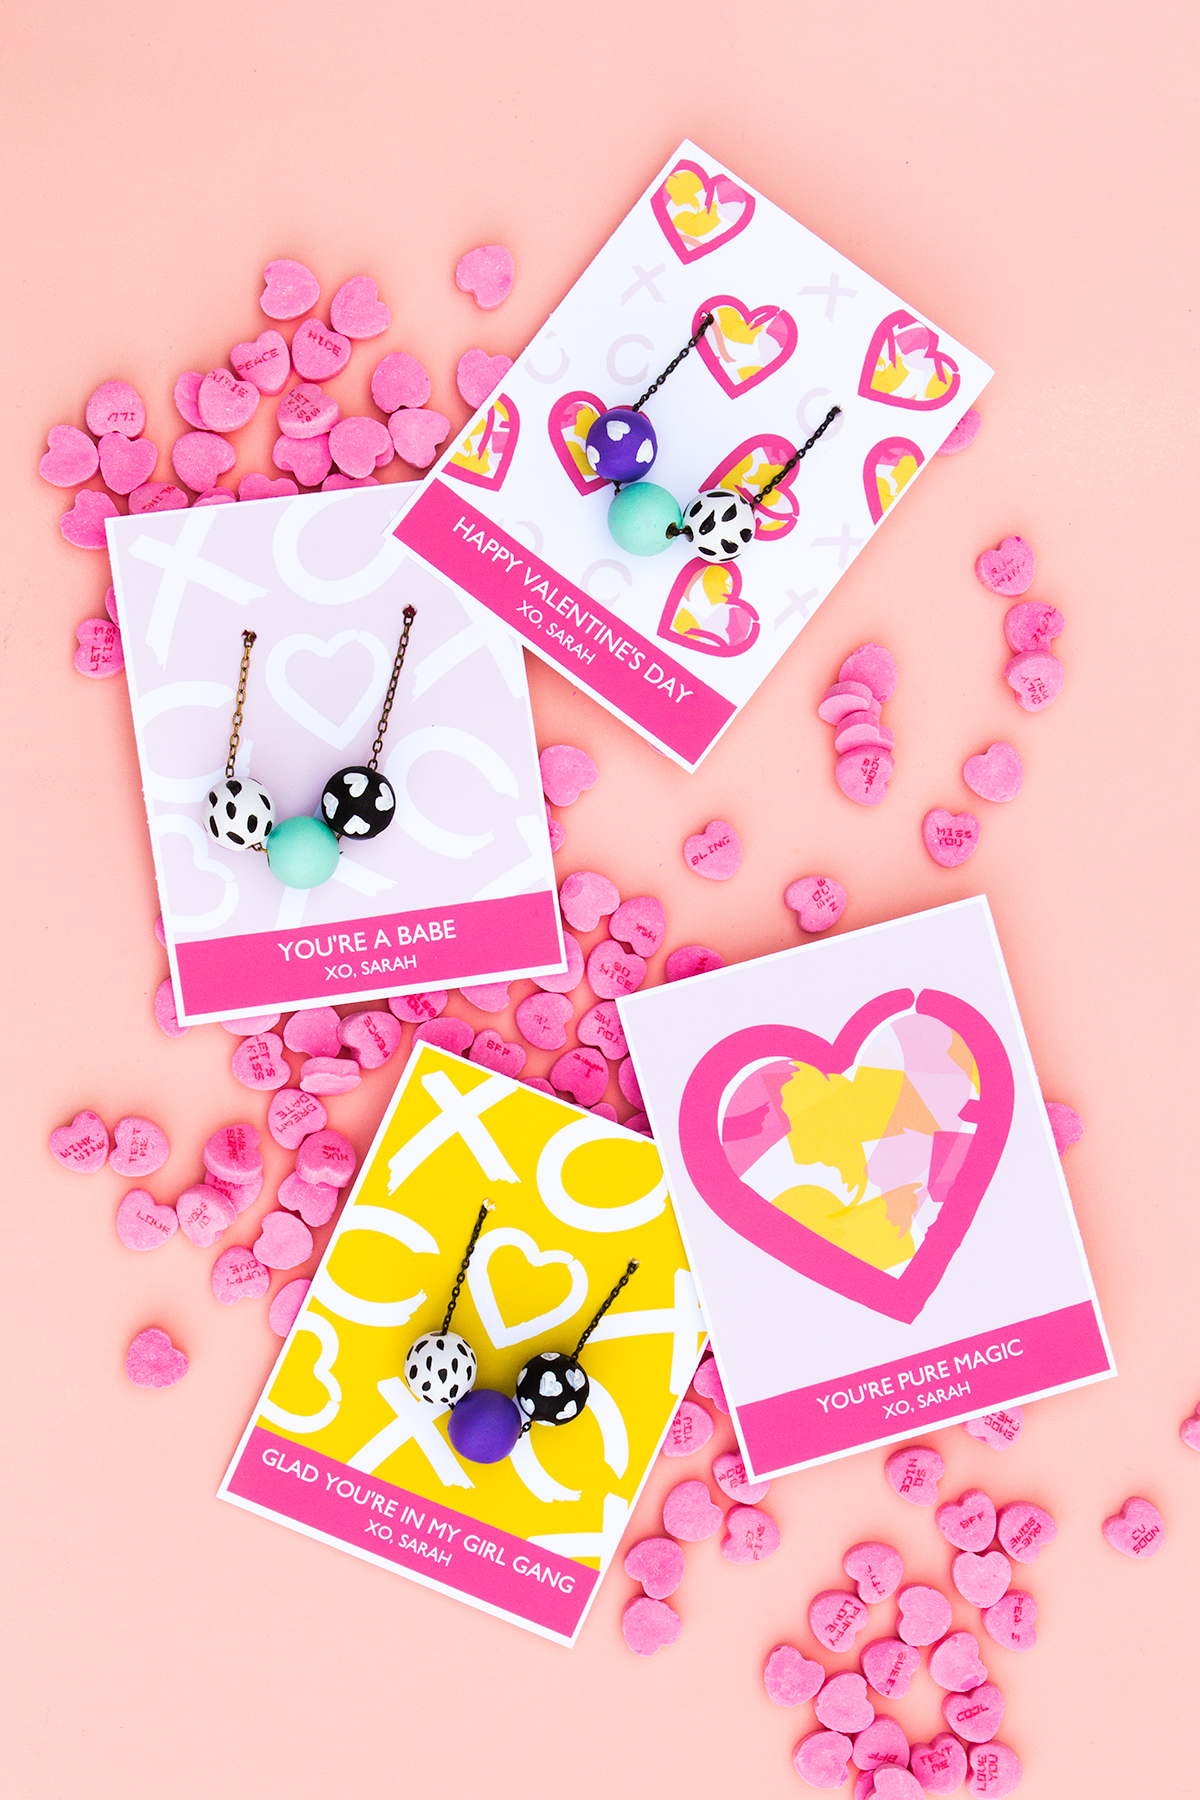 Colorful printable heart valentines day cards with handmade painted necklaces